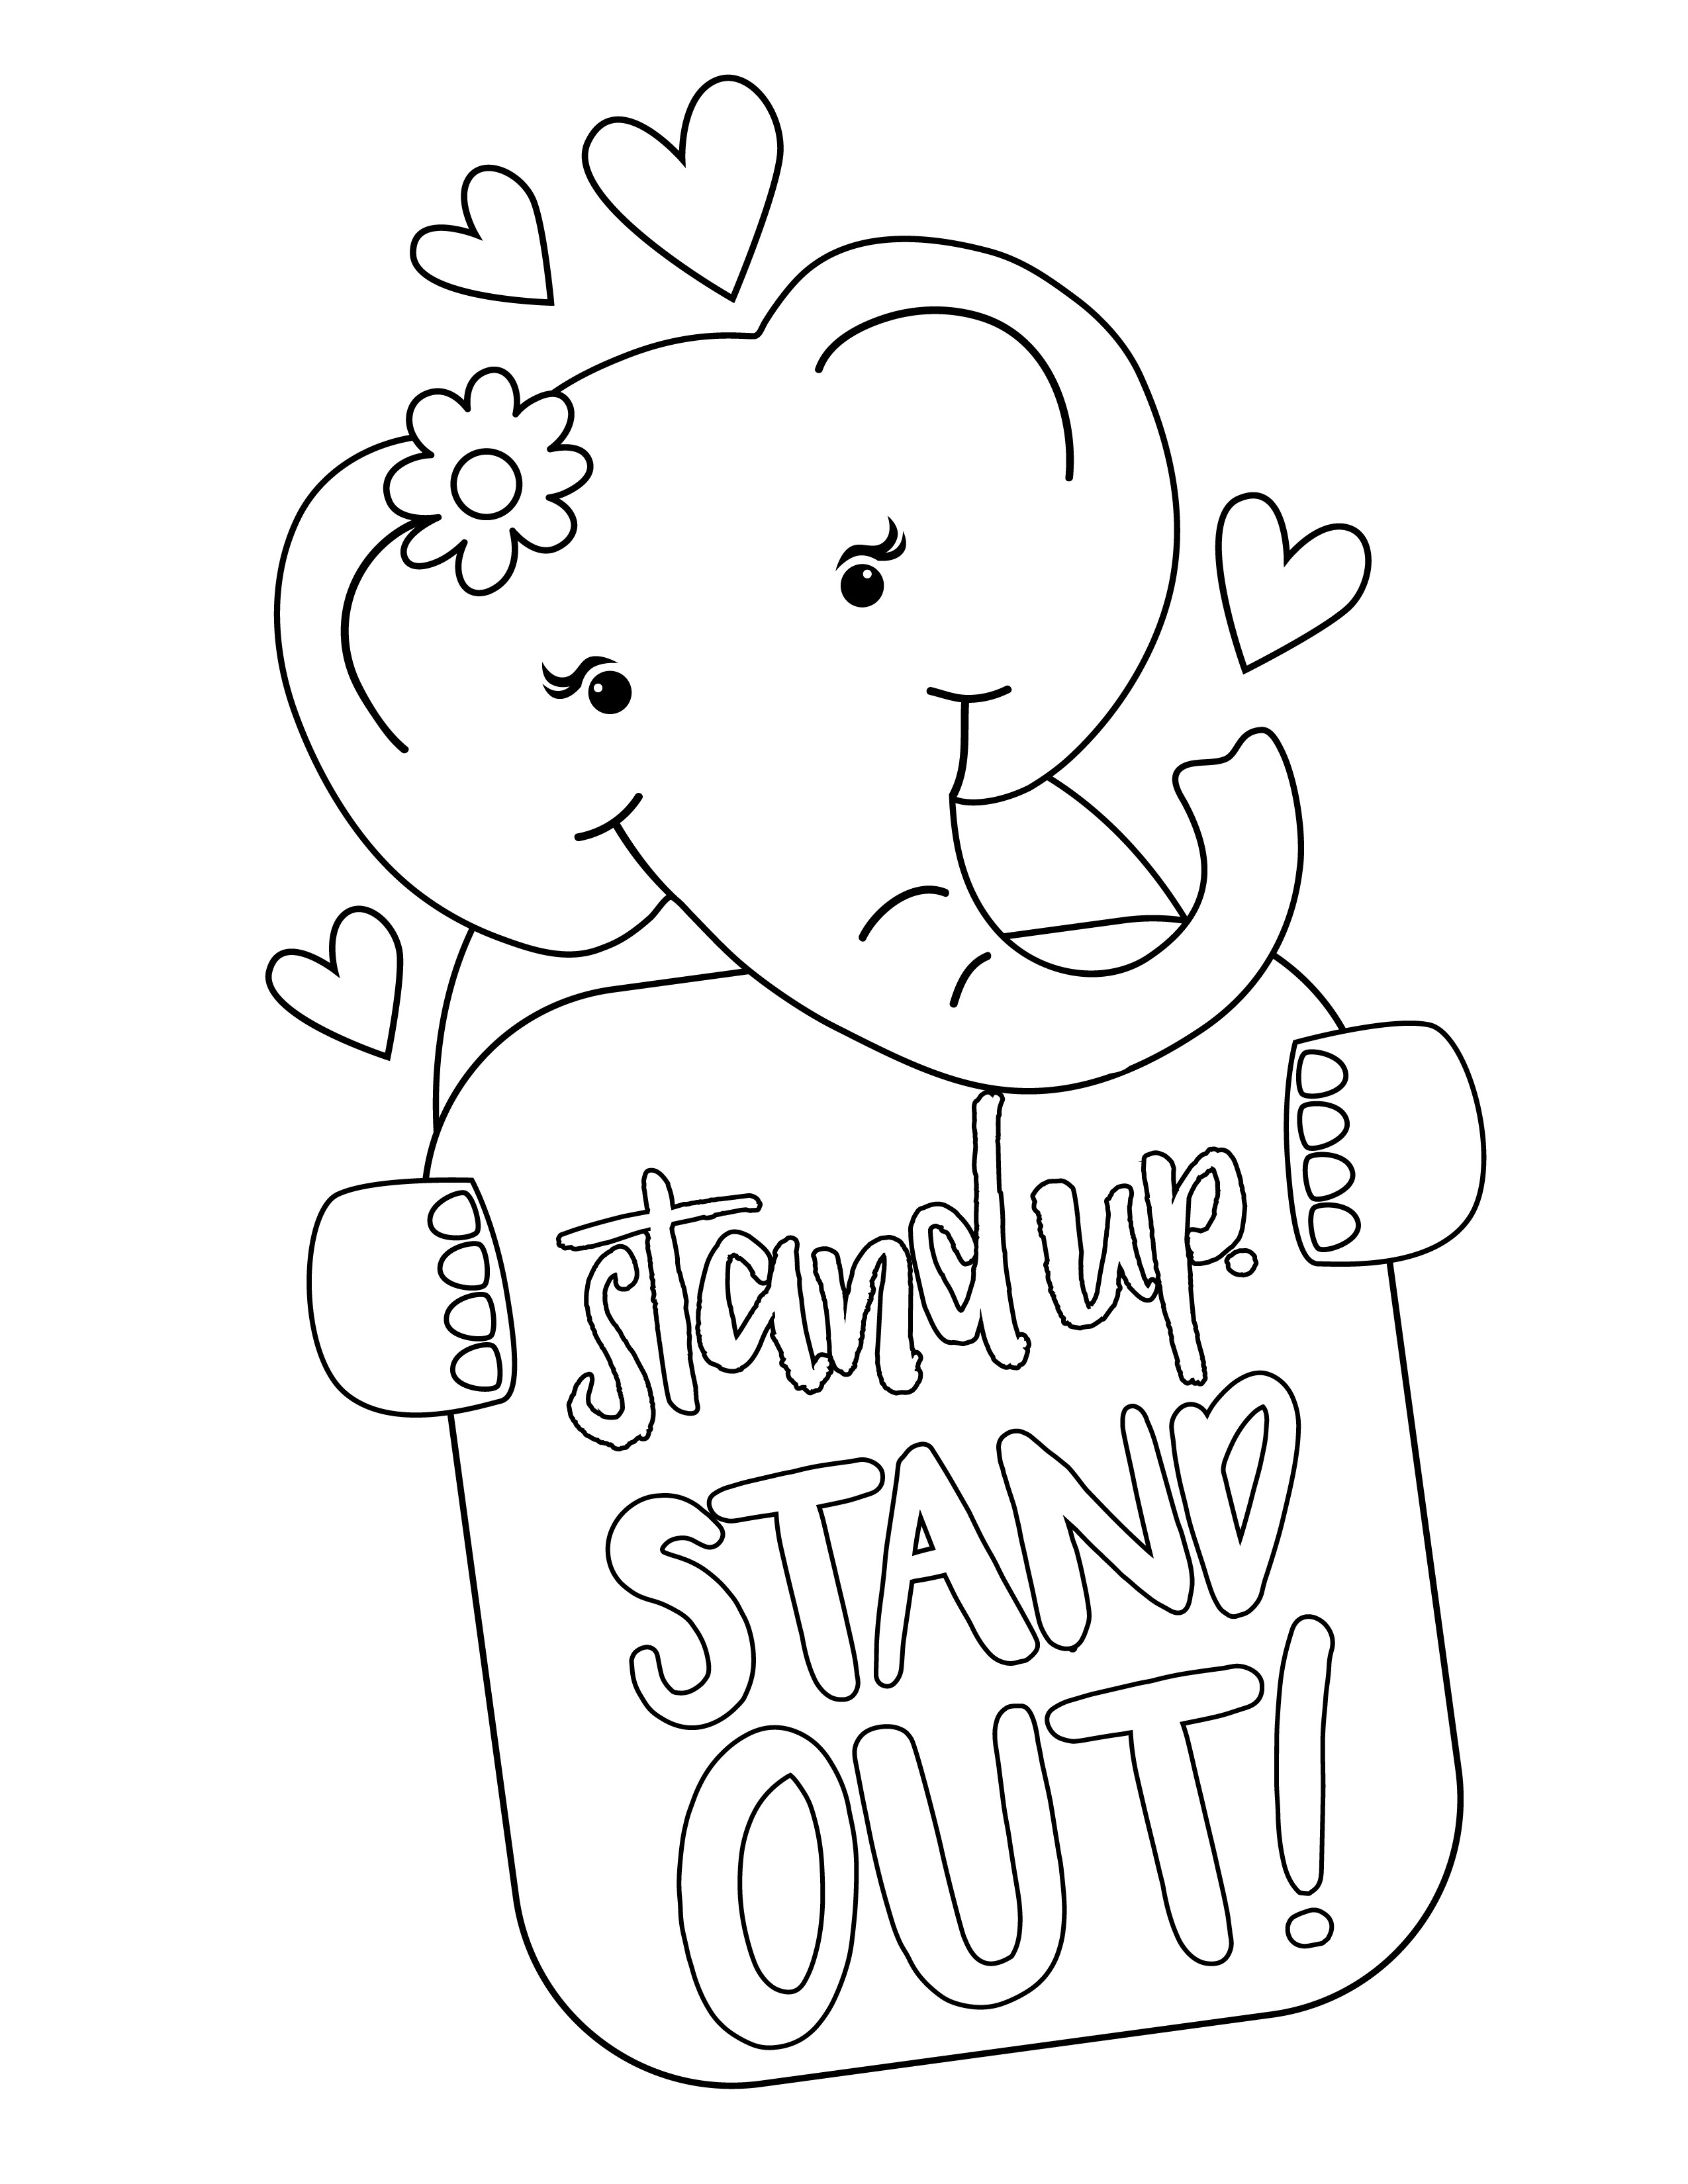 girl scout cookies coloring pages girls scout cookie coloring pages at getcoloringscom scout coloring girl pages cookies